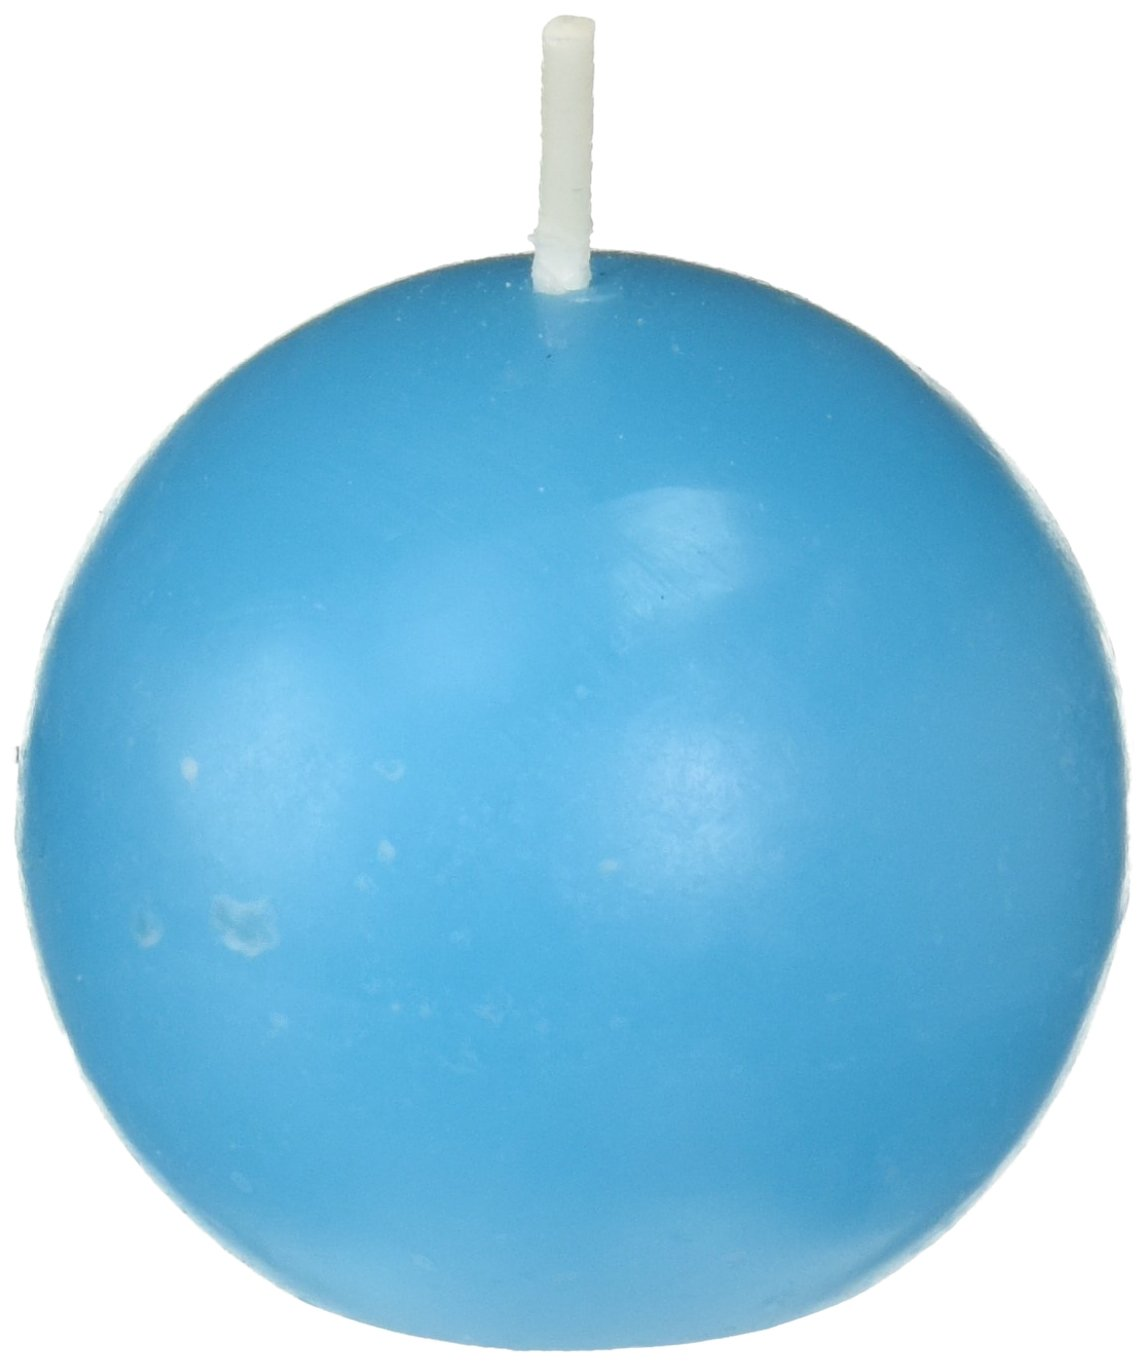 Zest Candle 12-Piece Ball Candles, 2-Inch, Turquoise